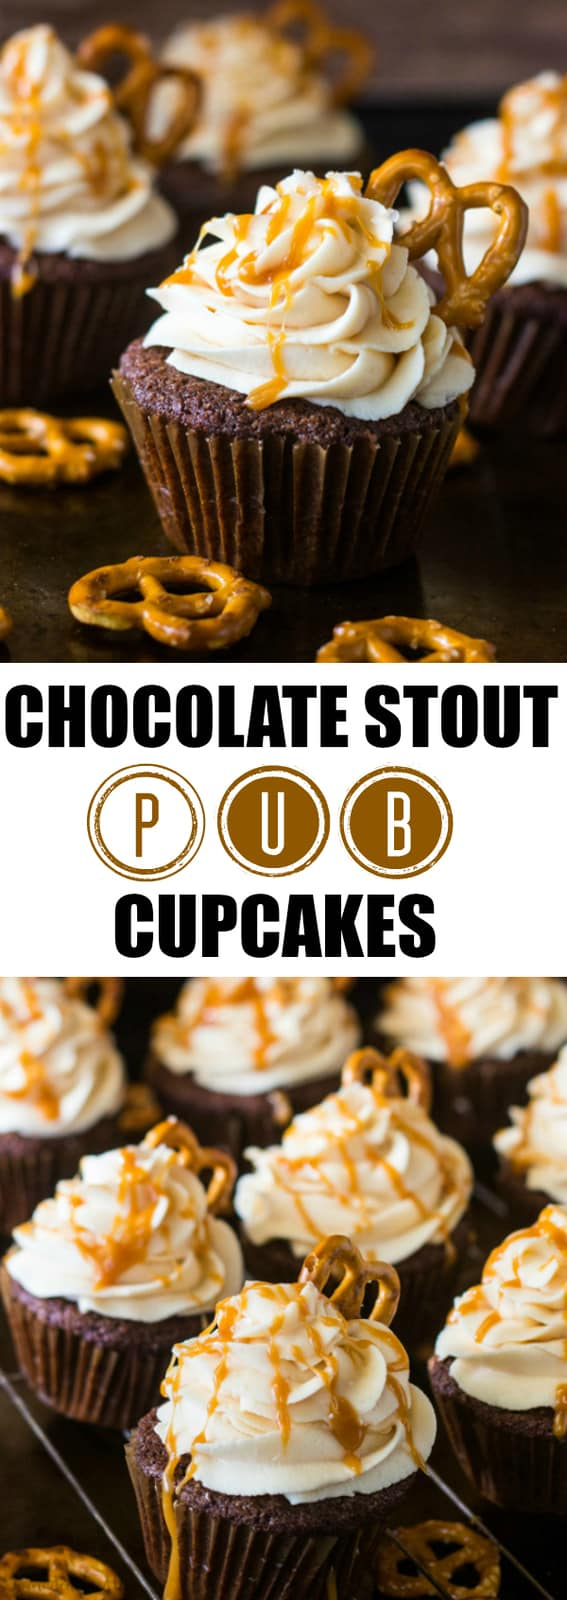 Chocolate Stout Pub Cupcakes collage with words in middle